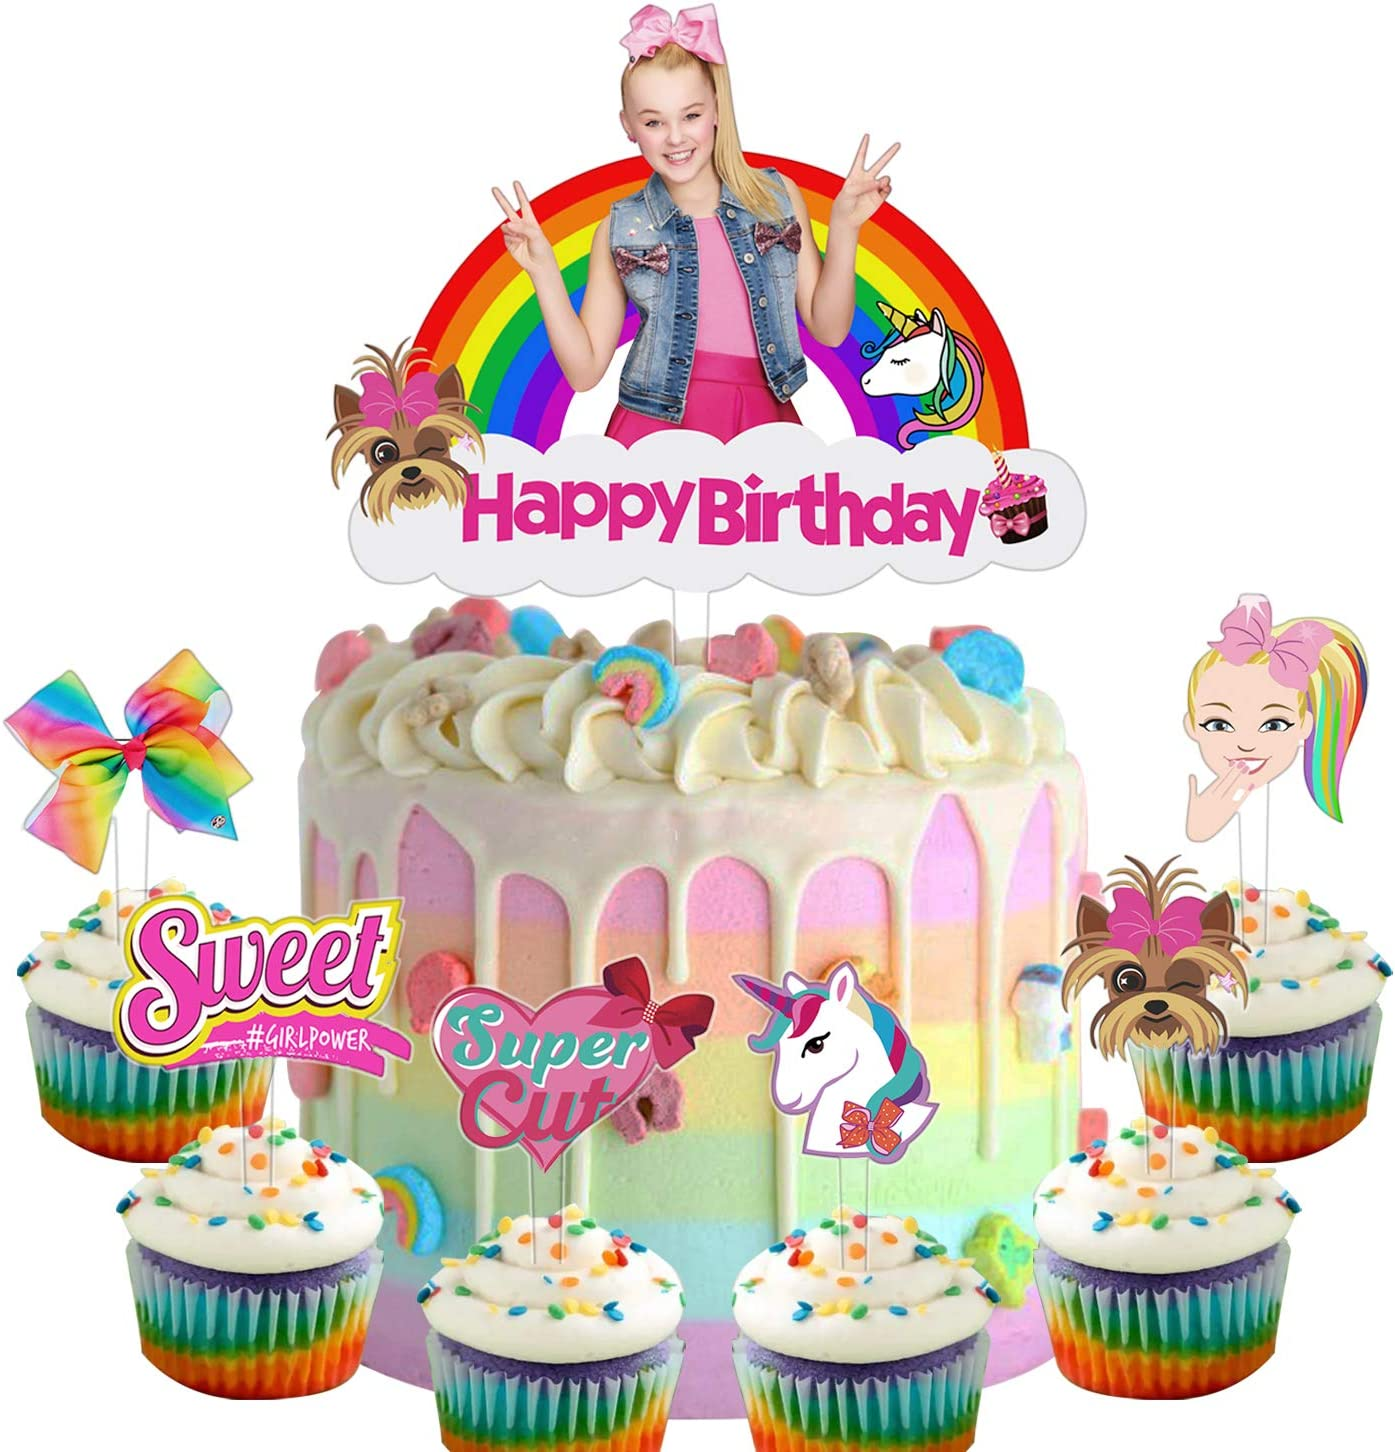 24 Jojo Cupcake Toppers Set Unicorn Bow Cake Birthday Party Decoration Toppers